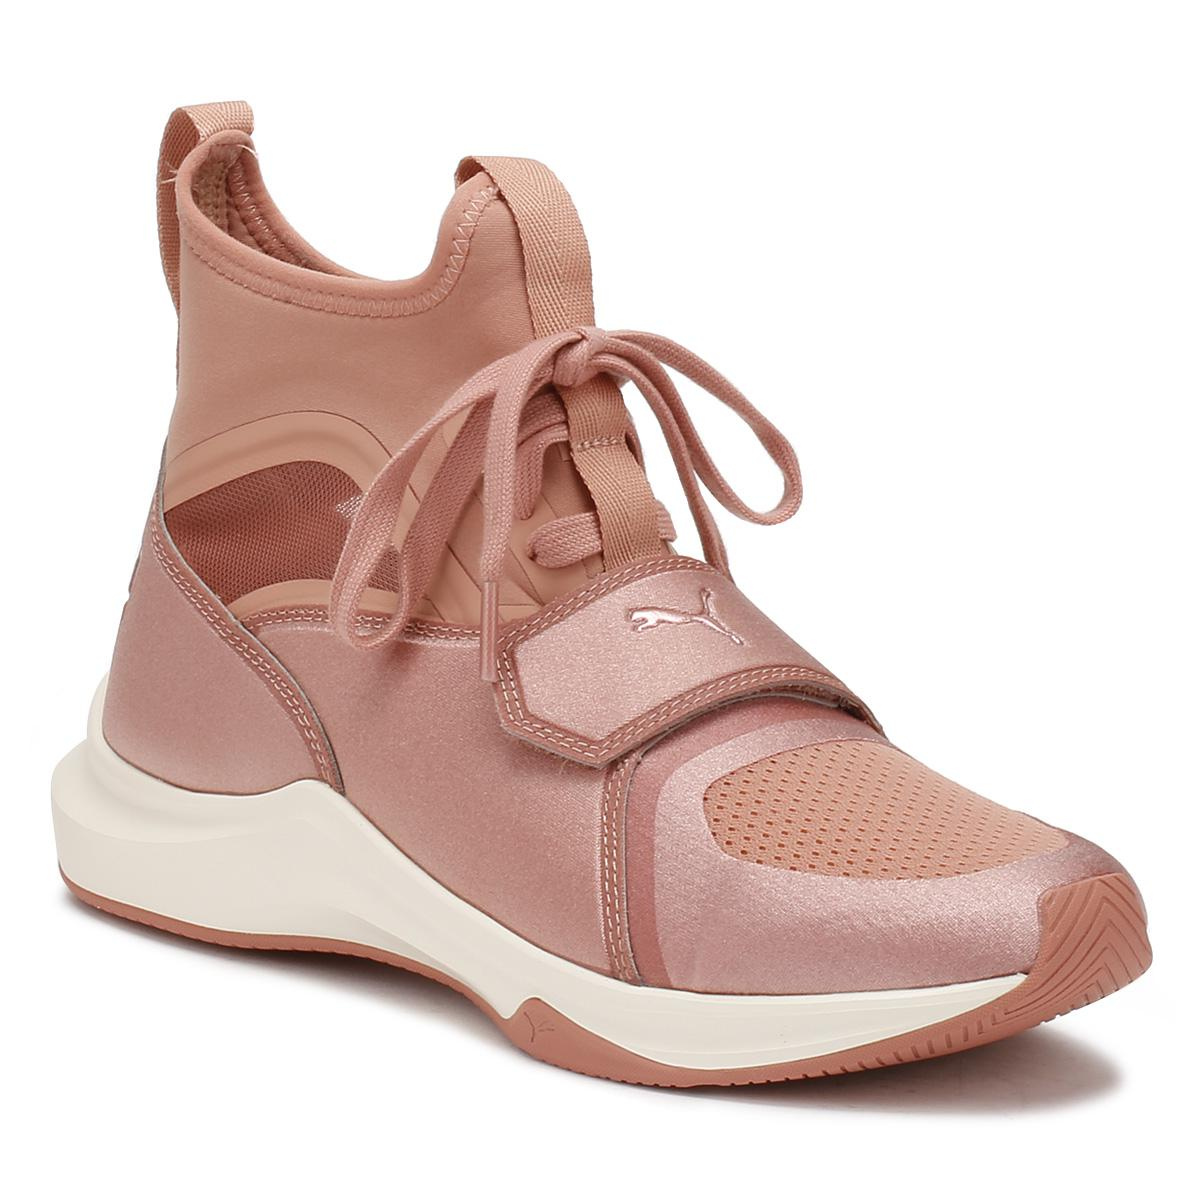 e93d2940f36a PUMA Womens Selena Gomez Pink Phenom Trainers in Pink - Save 25% - Lyst